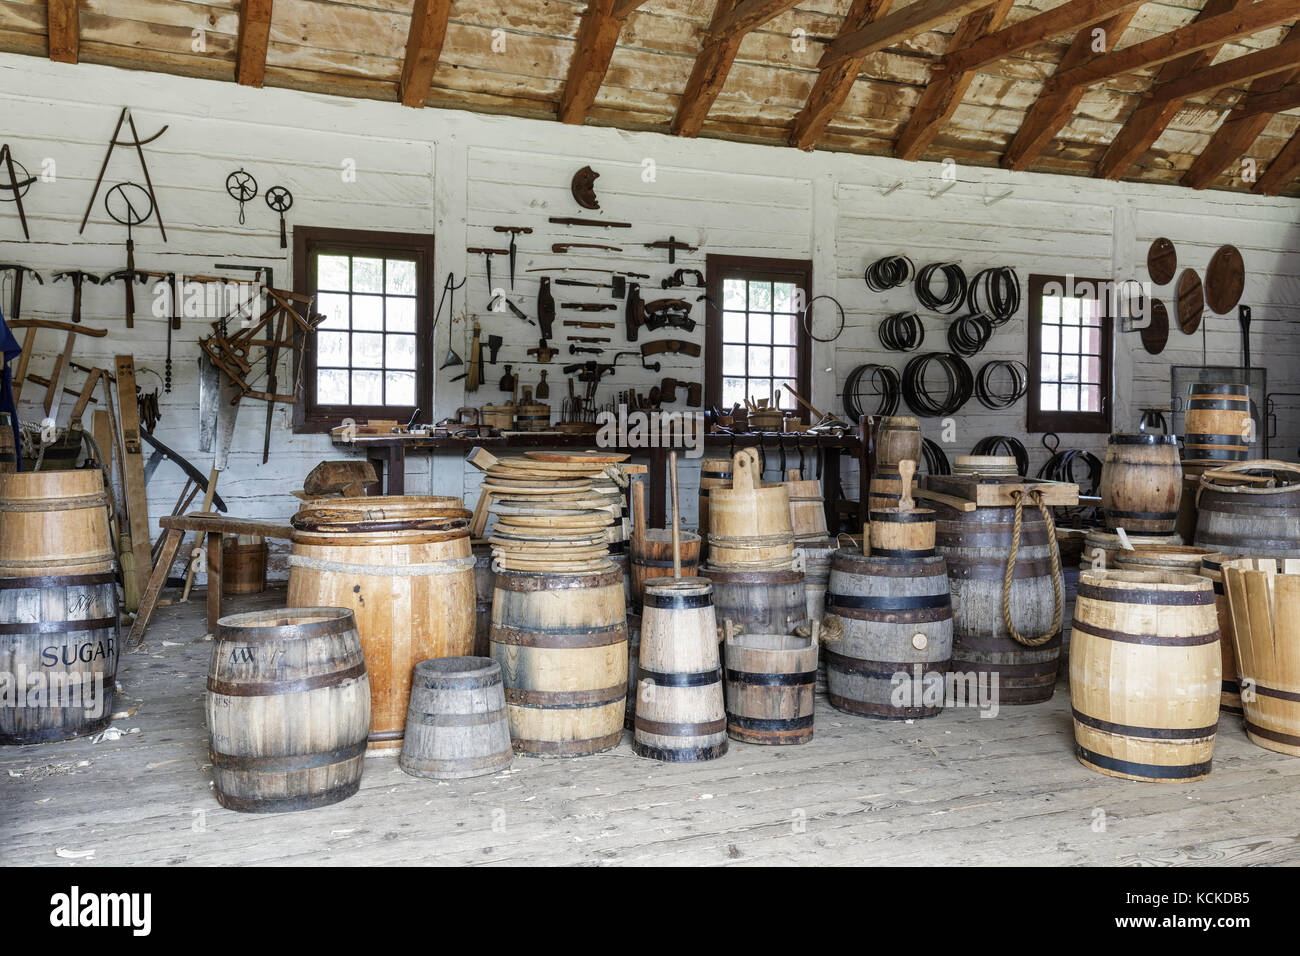 Wooden barrels in the Cooper's Shop at Fort William Historical Park, Thunder Bay, Ontario, Canada - Stock Image